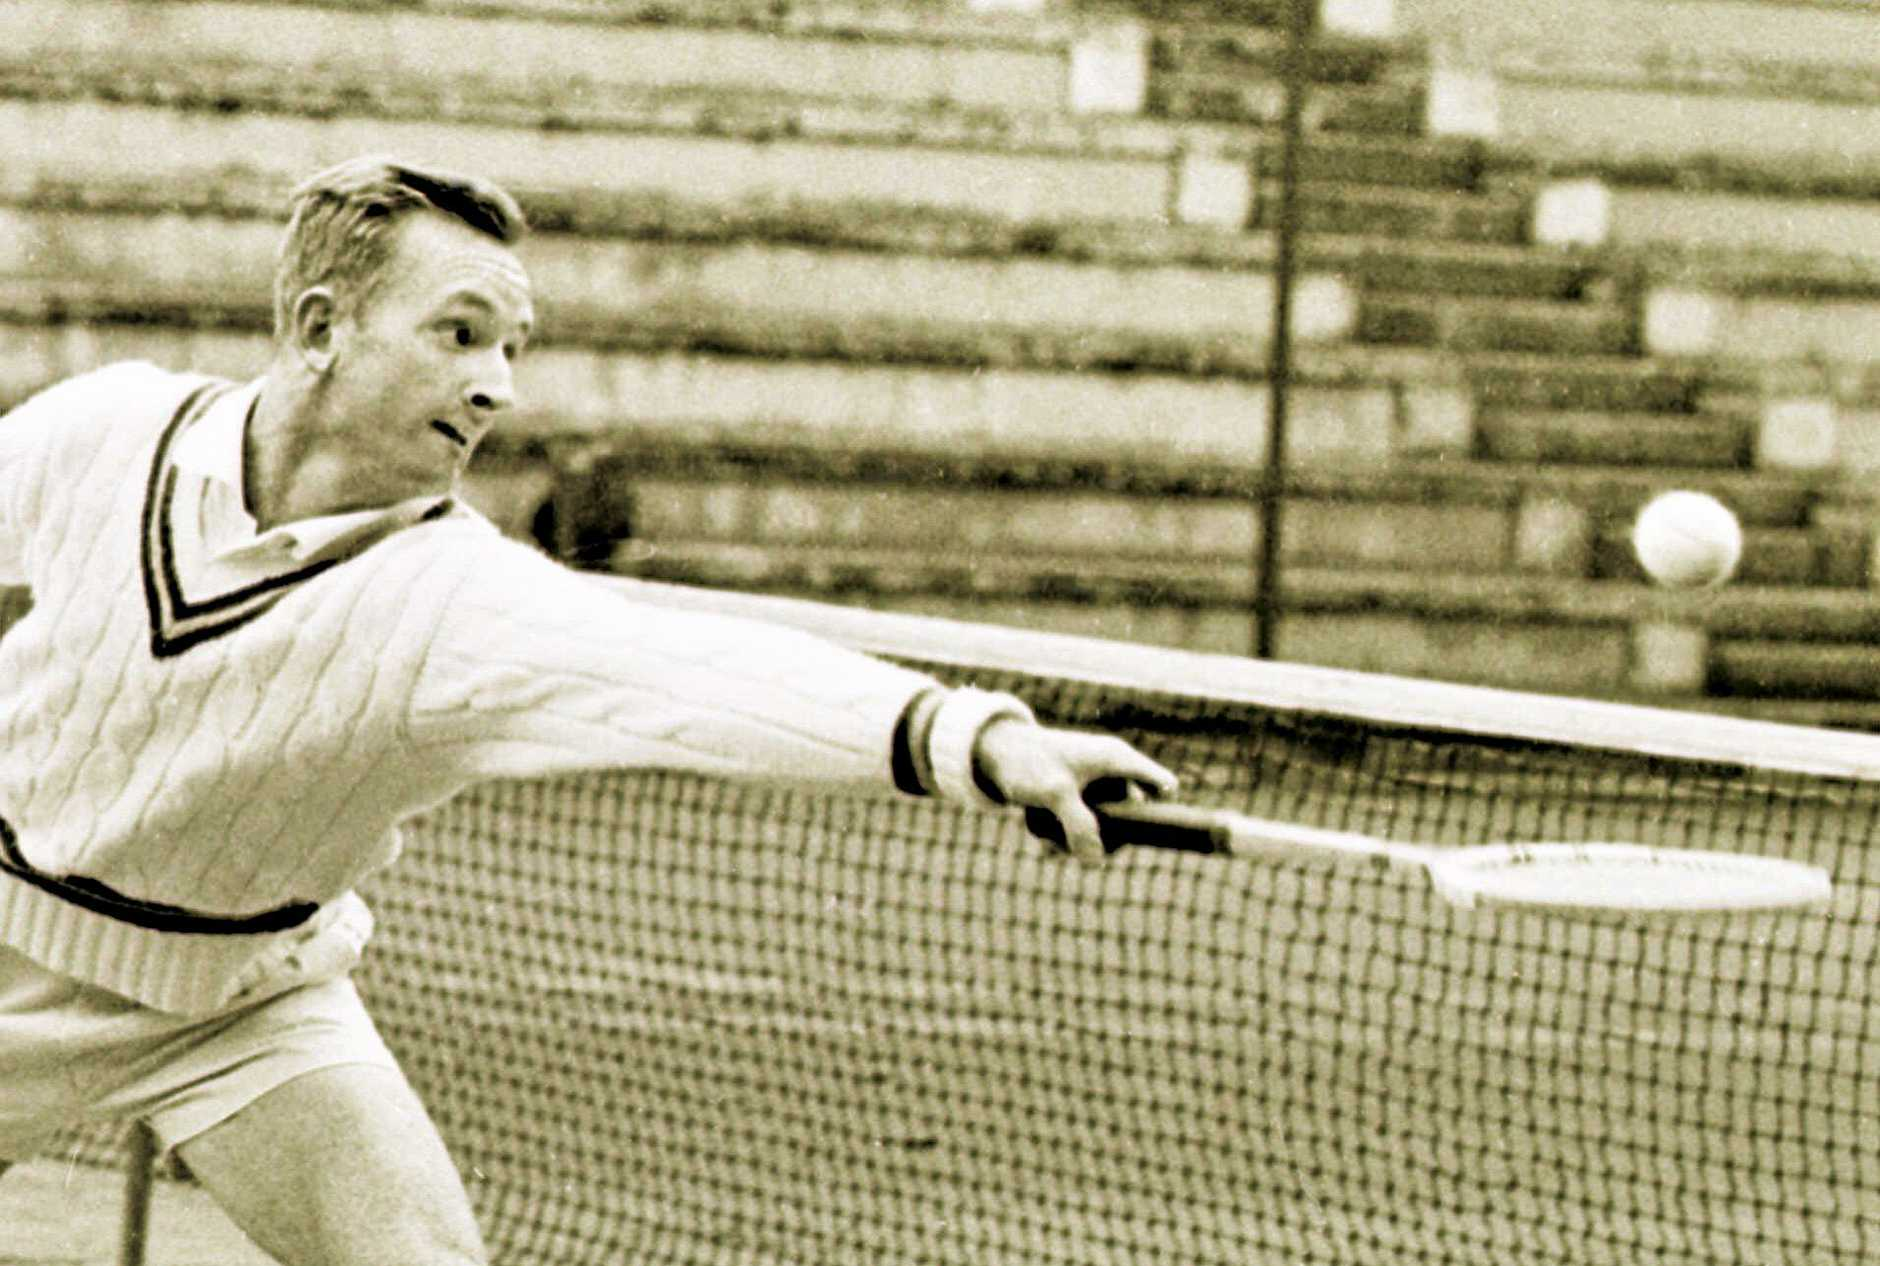 Australia's Rod Laver reaches to hit a return to Yugoslavia's Boro Jovanovic during their men's singles semi-final match in the Italian International Tennis Championship in Rome in this May 13, 1962 photo. Laver won 7-5, 9-7, 6-1. (AP Photo)